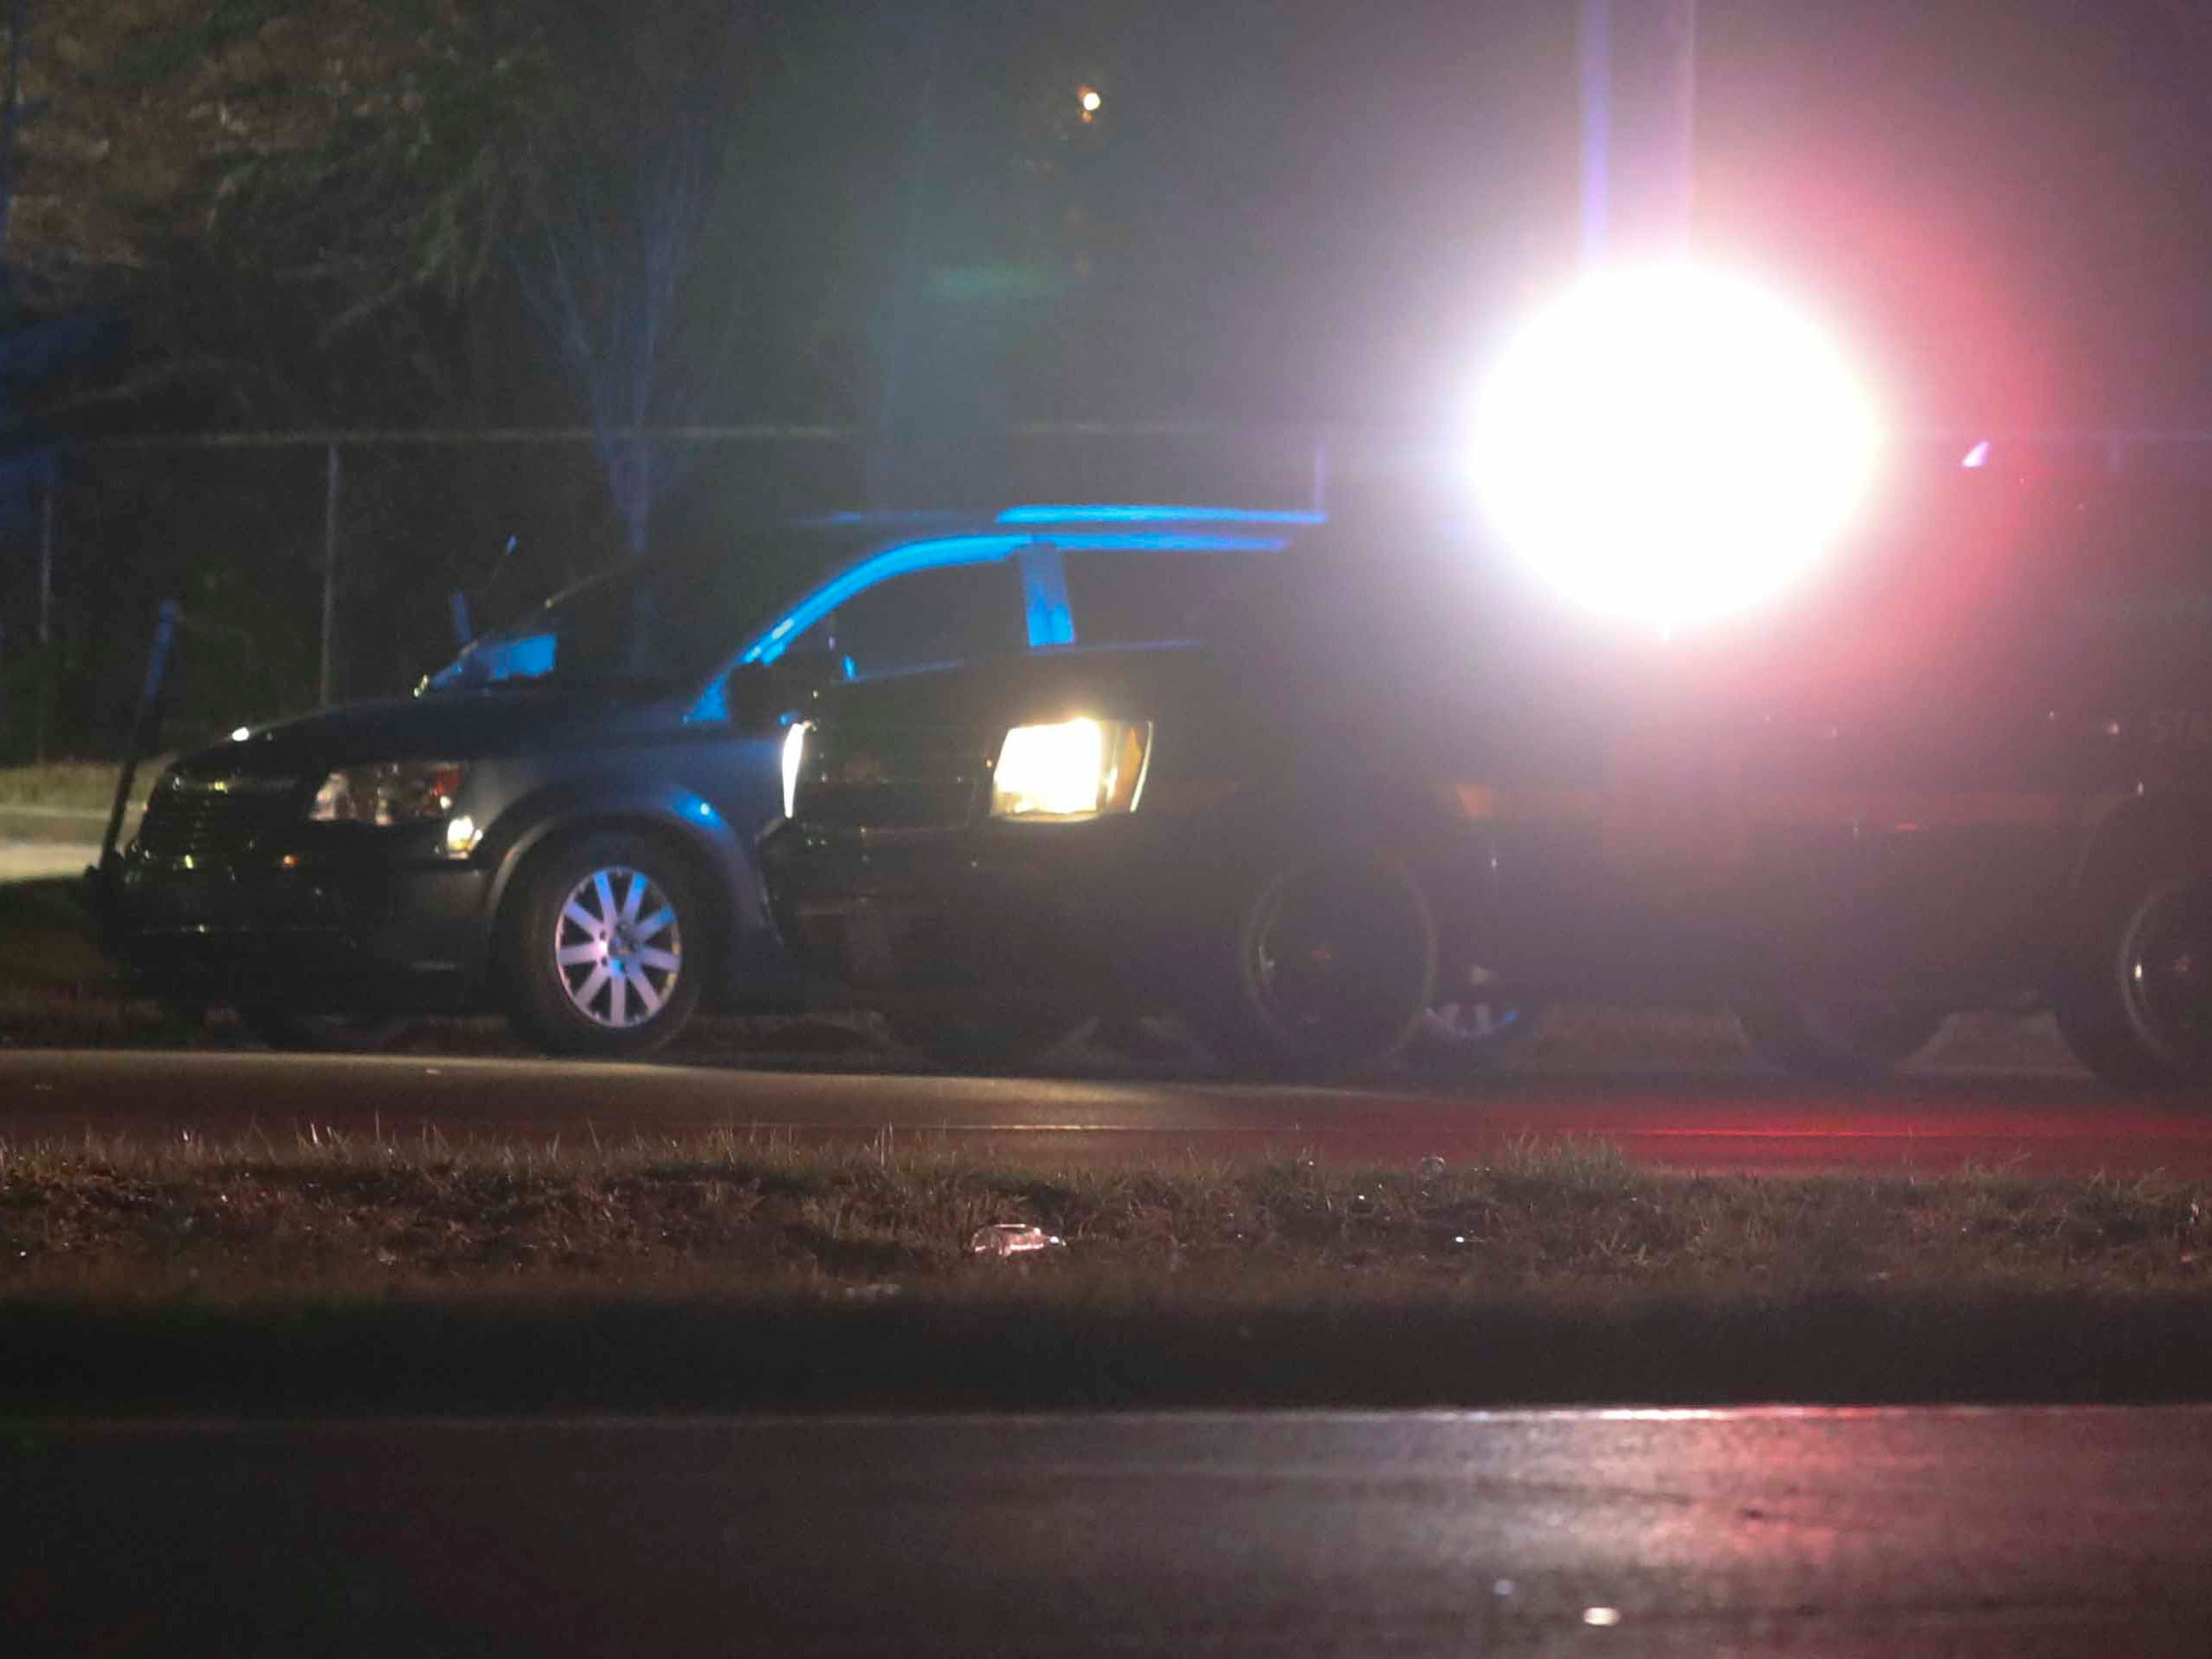 Emergency personnel work at the scene of an accident involving a pedestrian on southbound U.S. 13 near Beaver Brook Plaza near New Castle Thursday. A person was reportedly struck by a vehicle on U.S. 13 near Willow Chase Apartments and Vinway Road about 10 p.m.